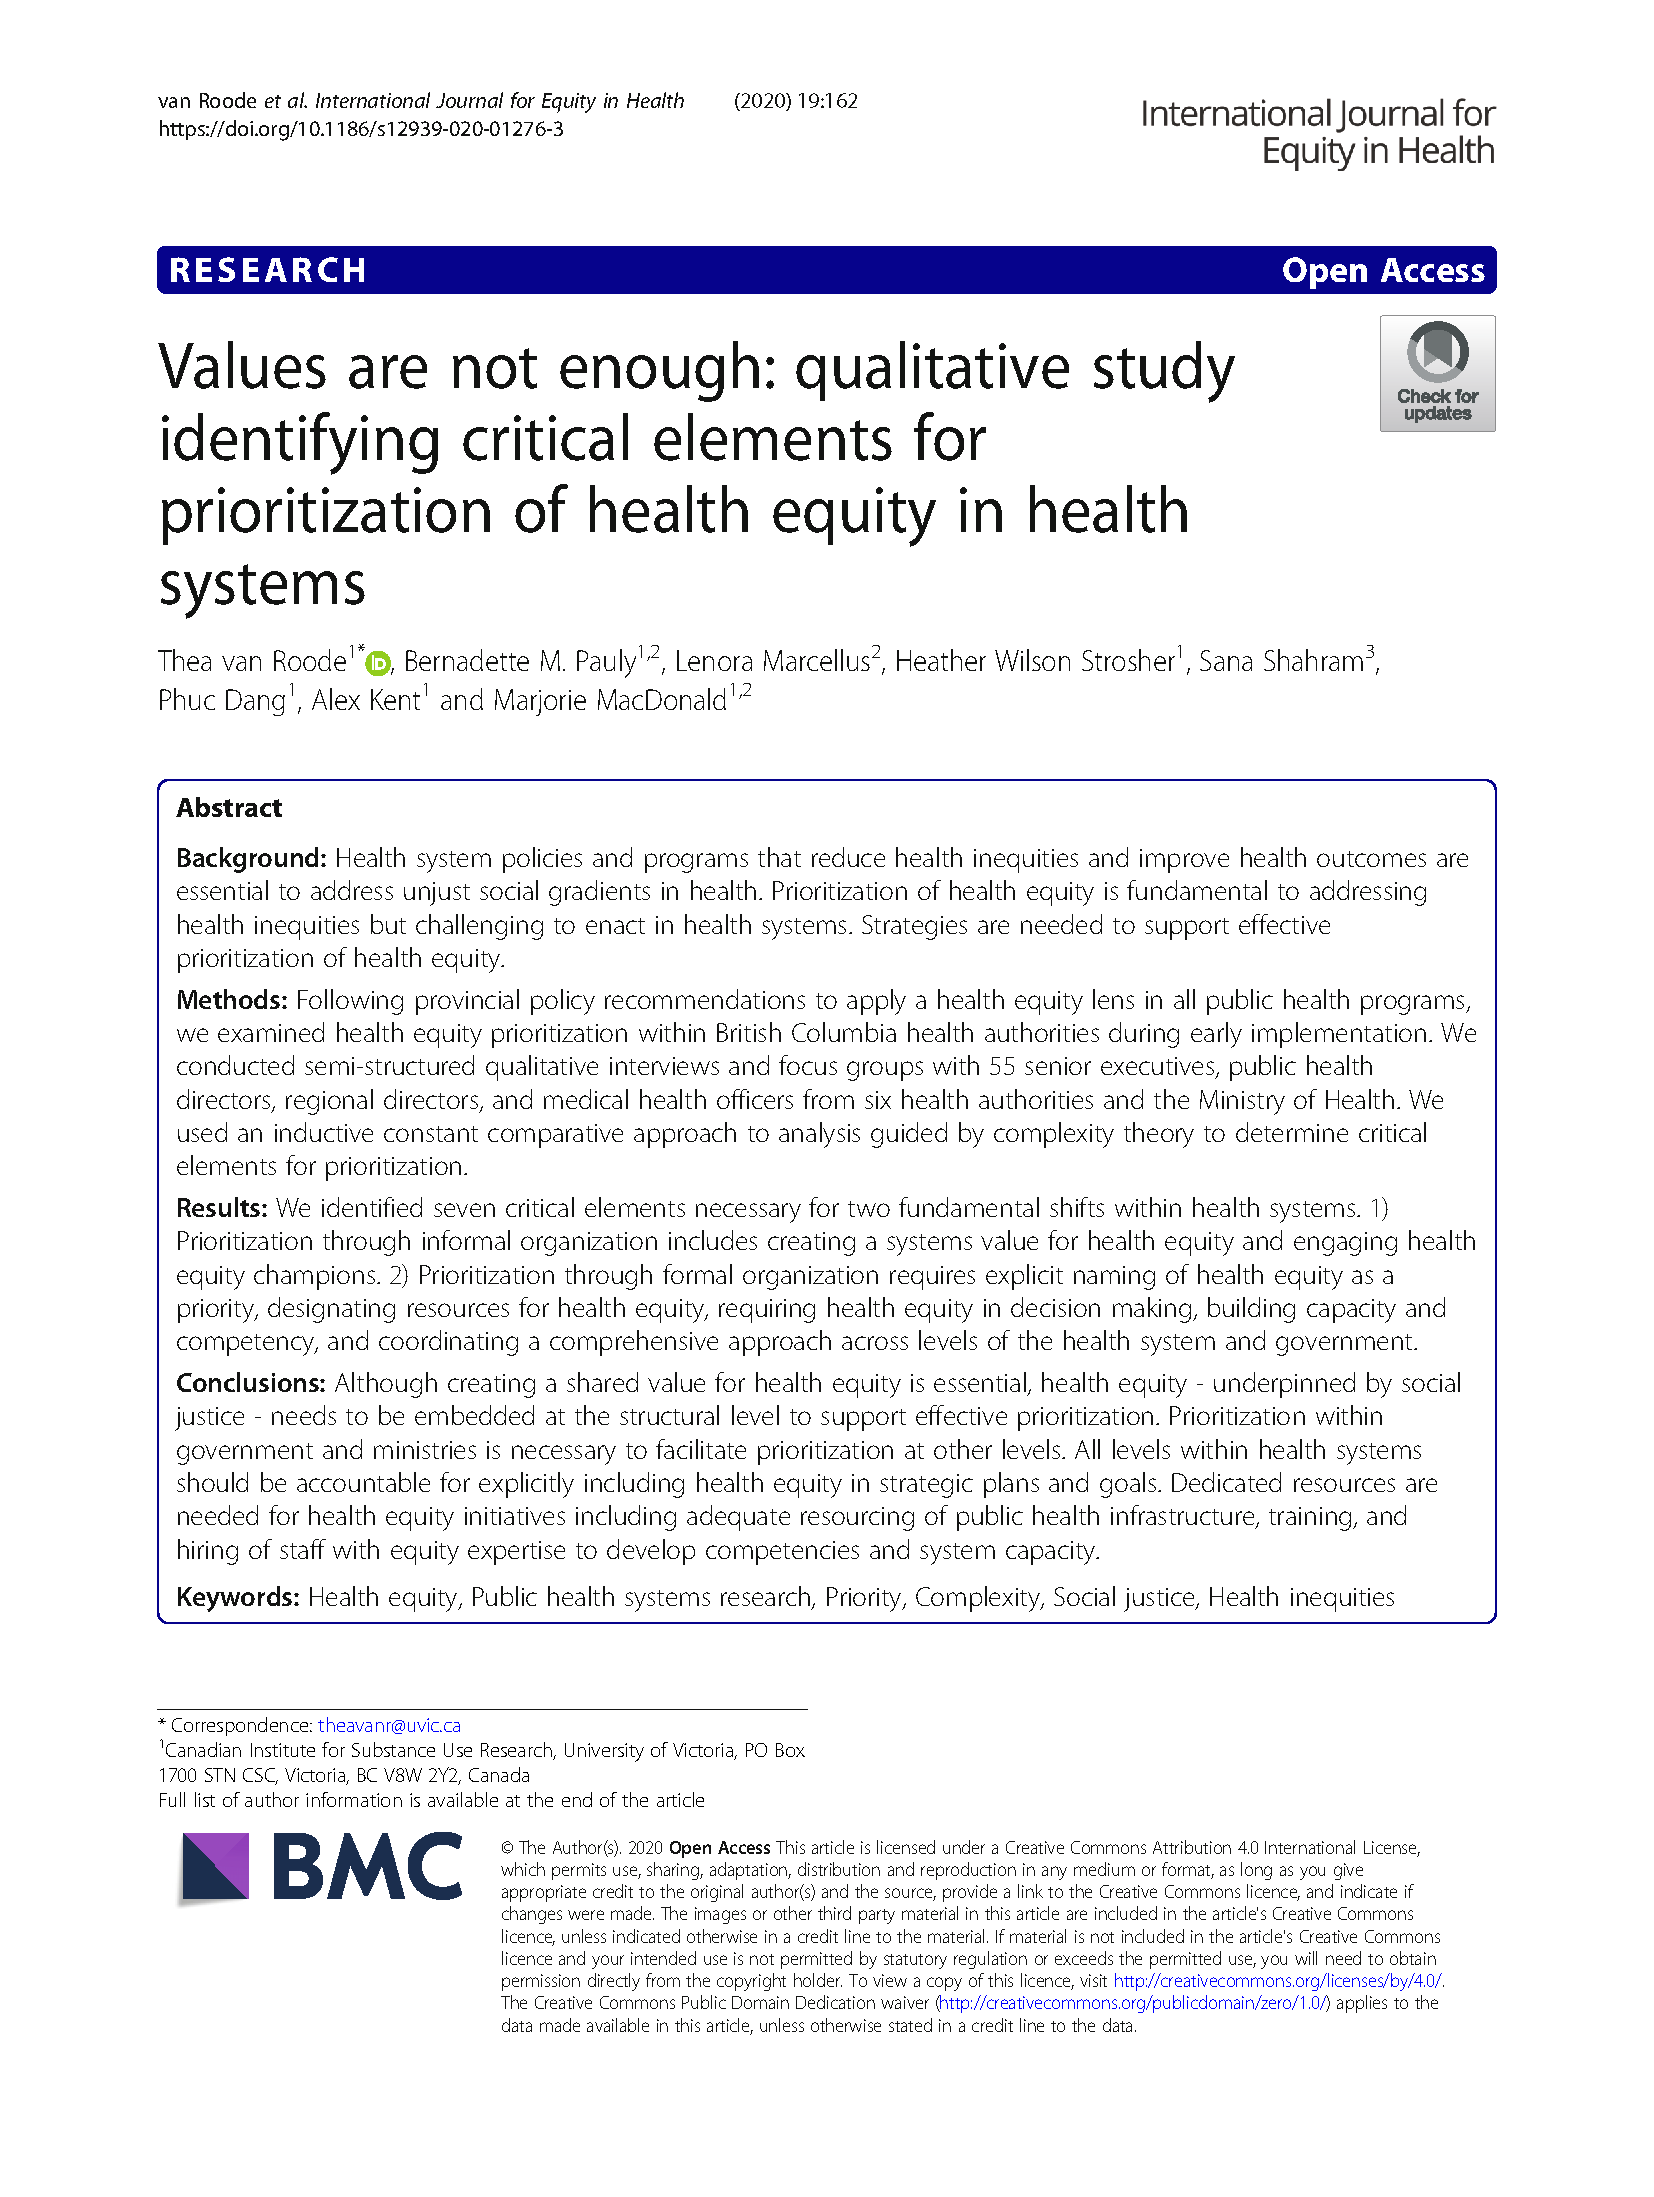 Values are not enough: Qualitative study identifying critical elements for prioritization of health equity in health systems